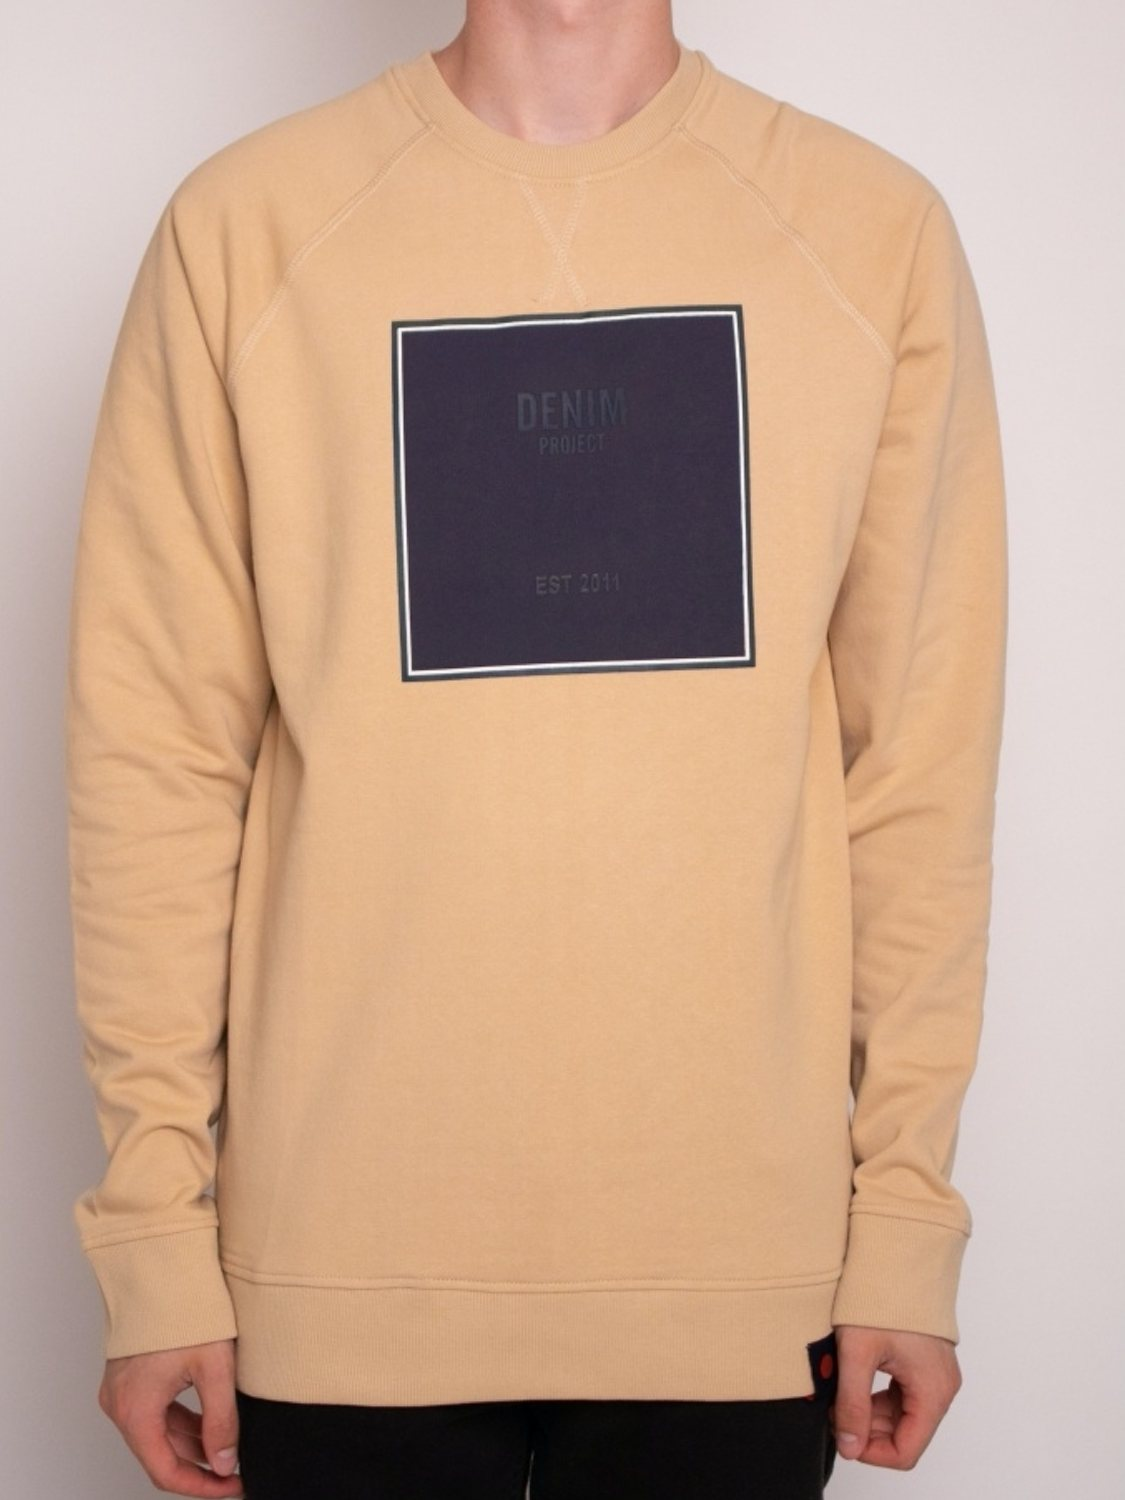 DENIM PROJECT - Sweatshirt Sand Logo | GATE 36 Hobro